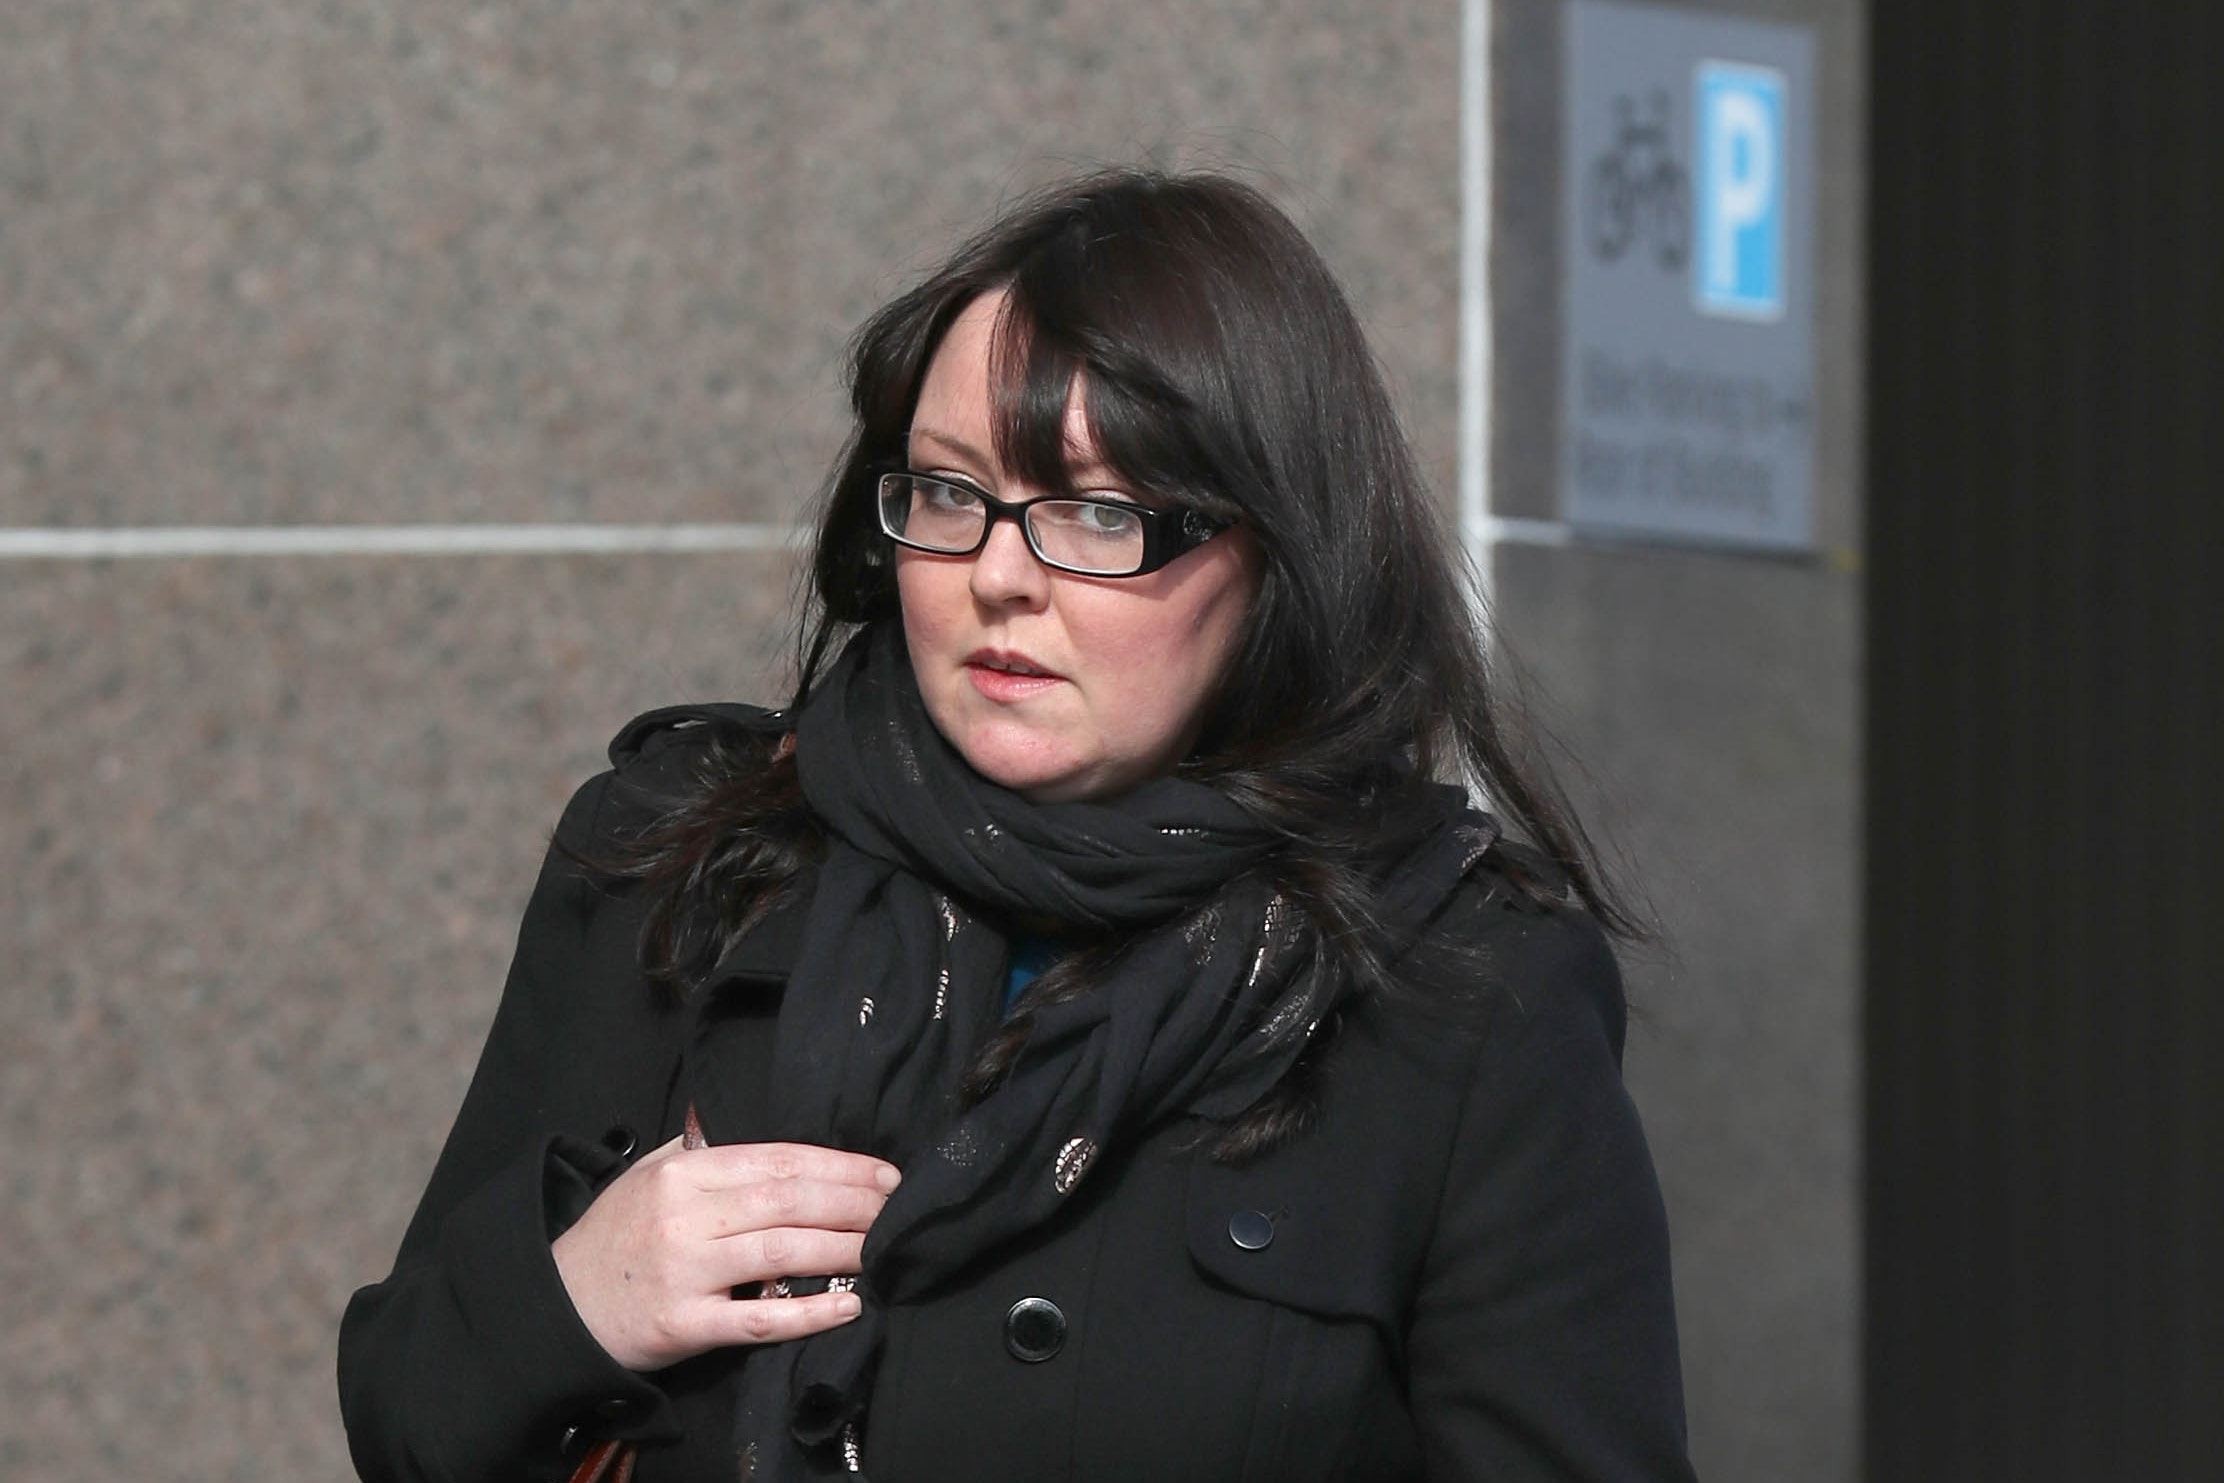 Natalie McGarry refused leave to appeal against embezzlement sentence